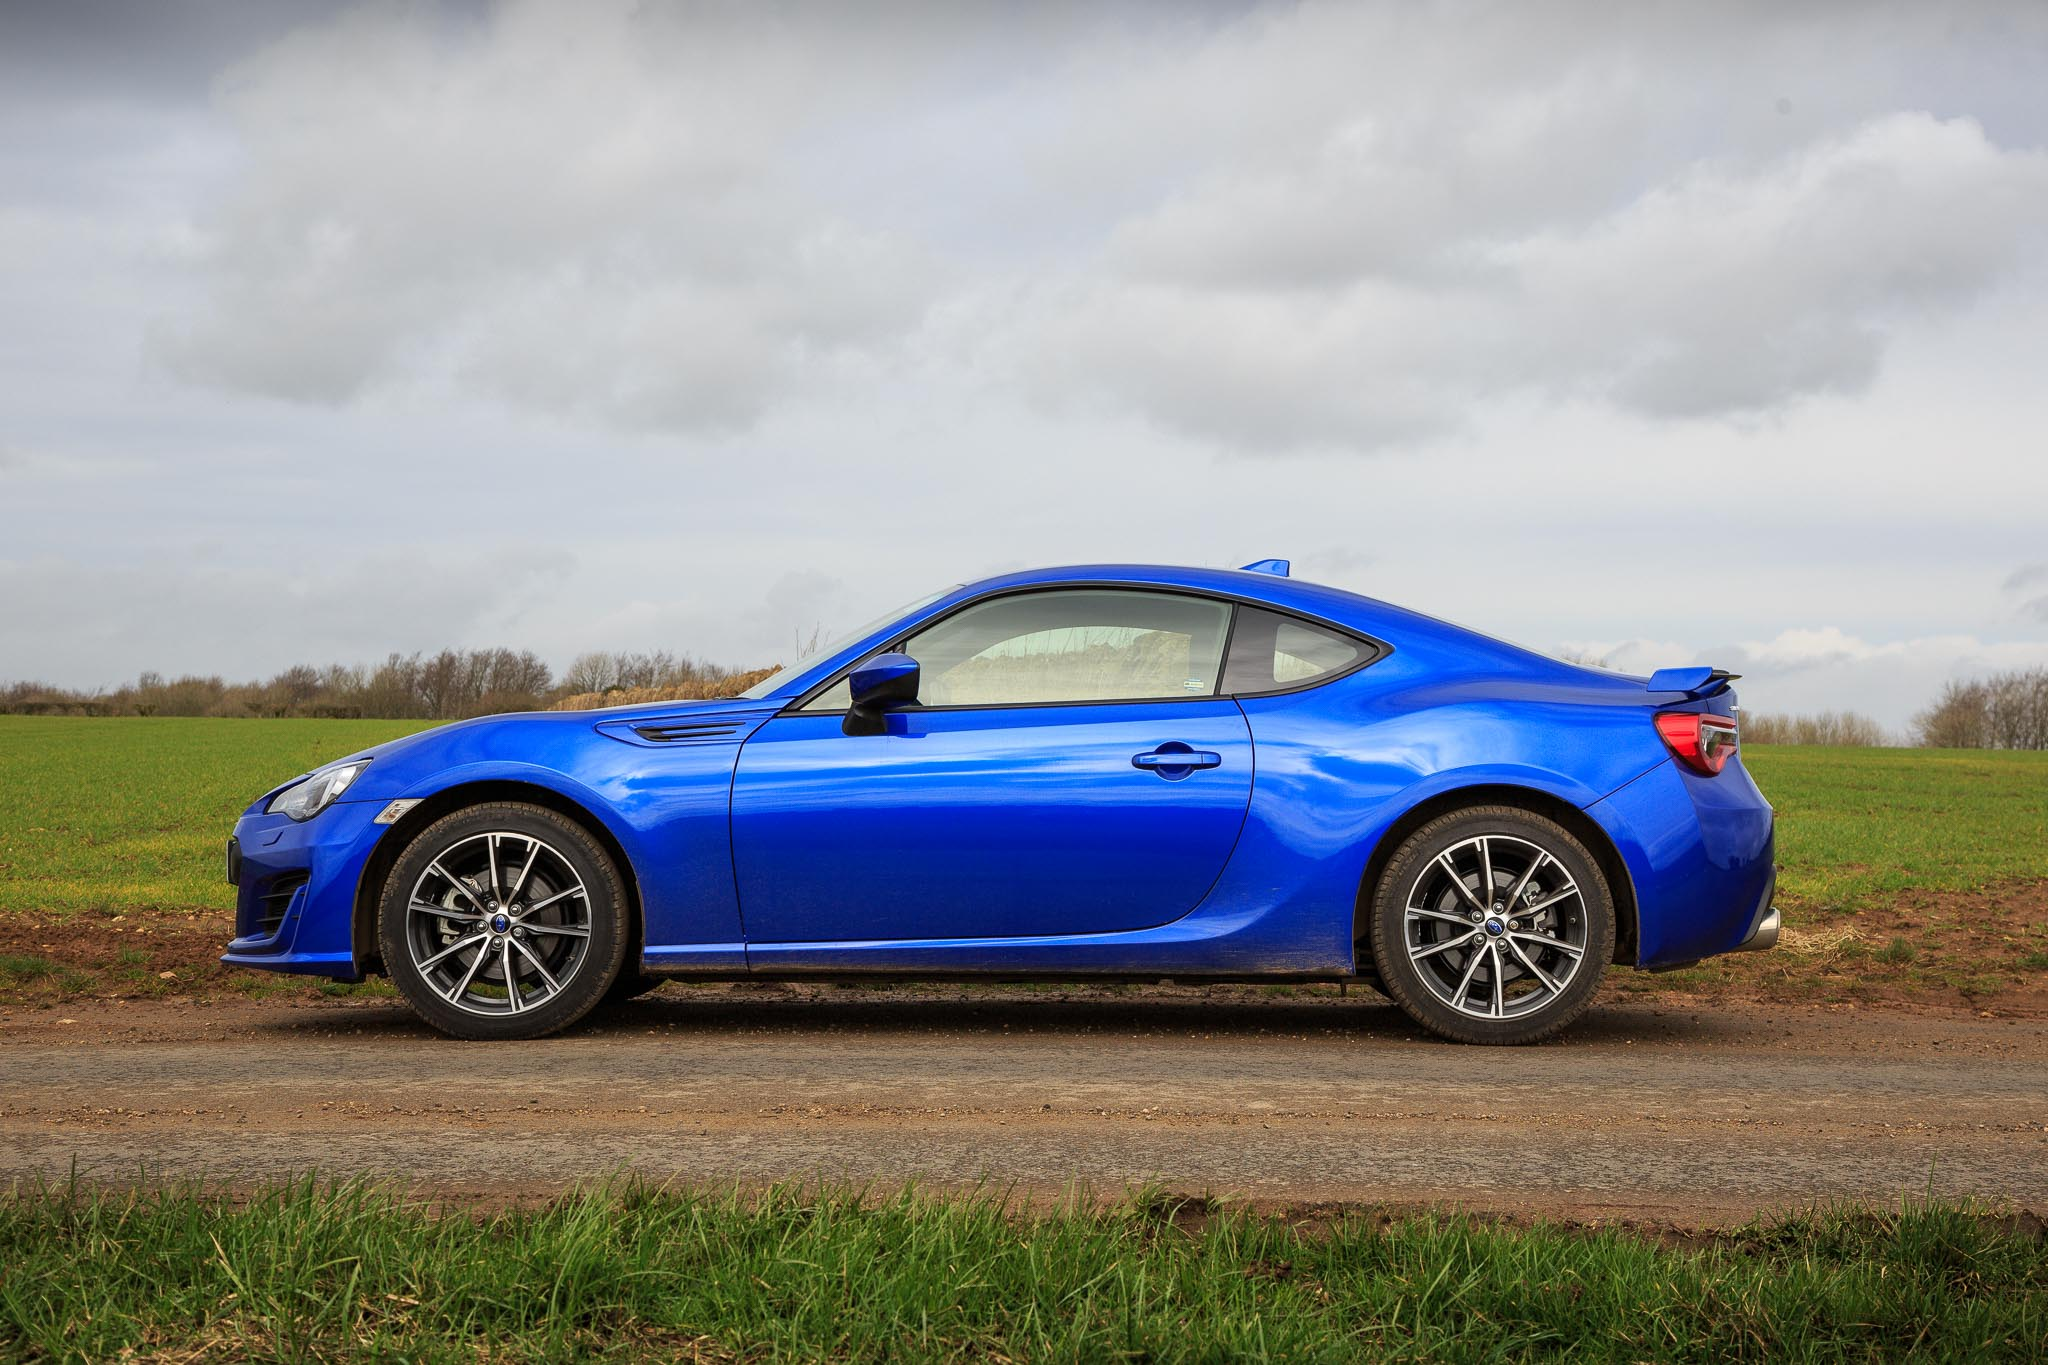 Boxer Engine Subaru >> 2017 Subaru BRZ SE LUX Review